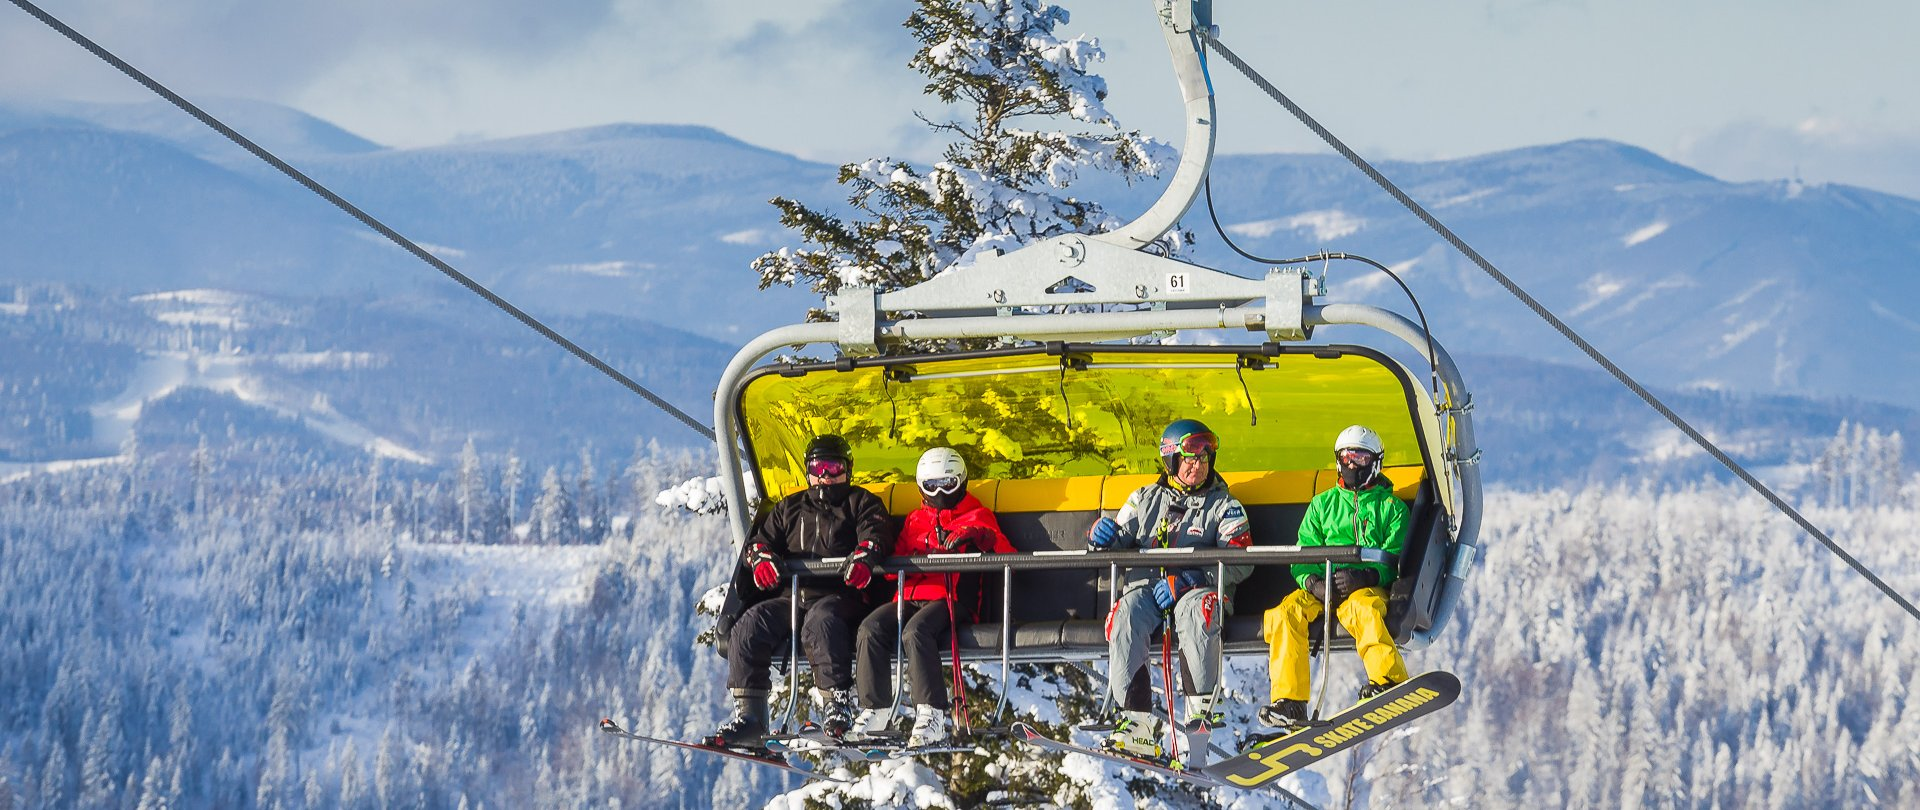 Winter Holidays 2020 - Winter Chillout at the Gondola Ski Lift